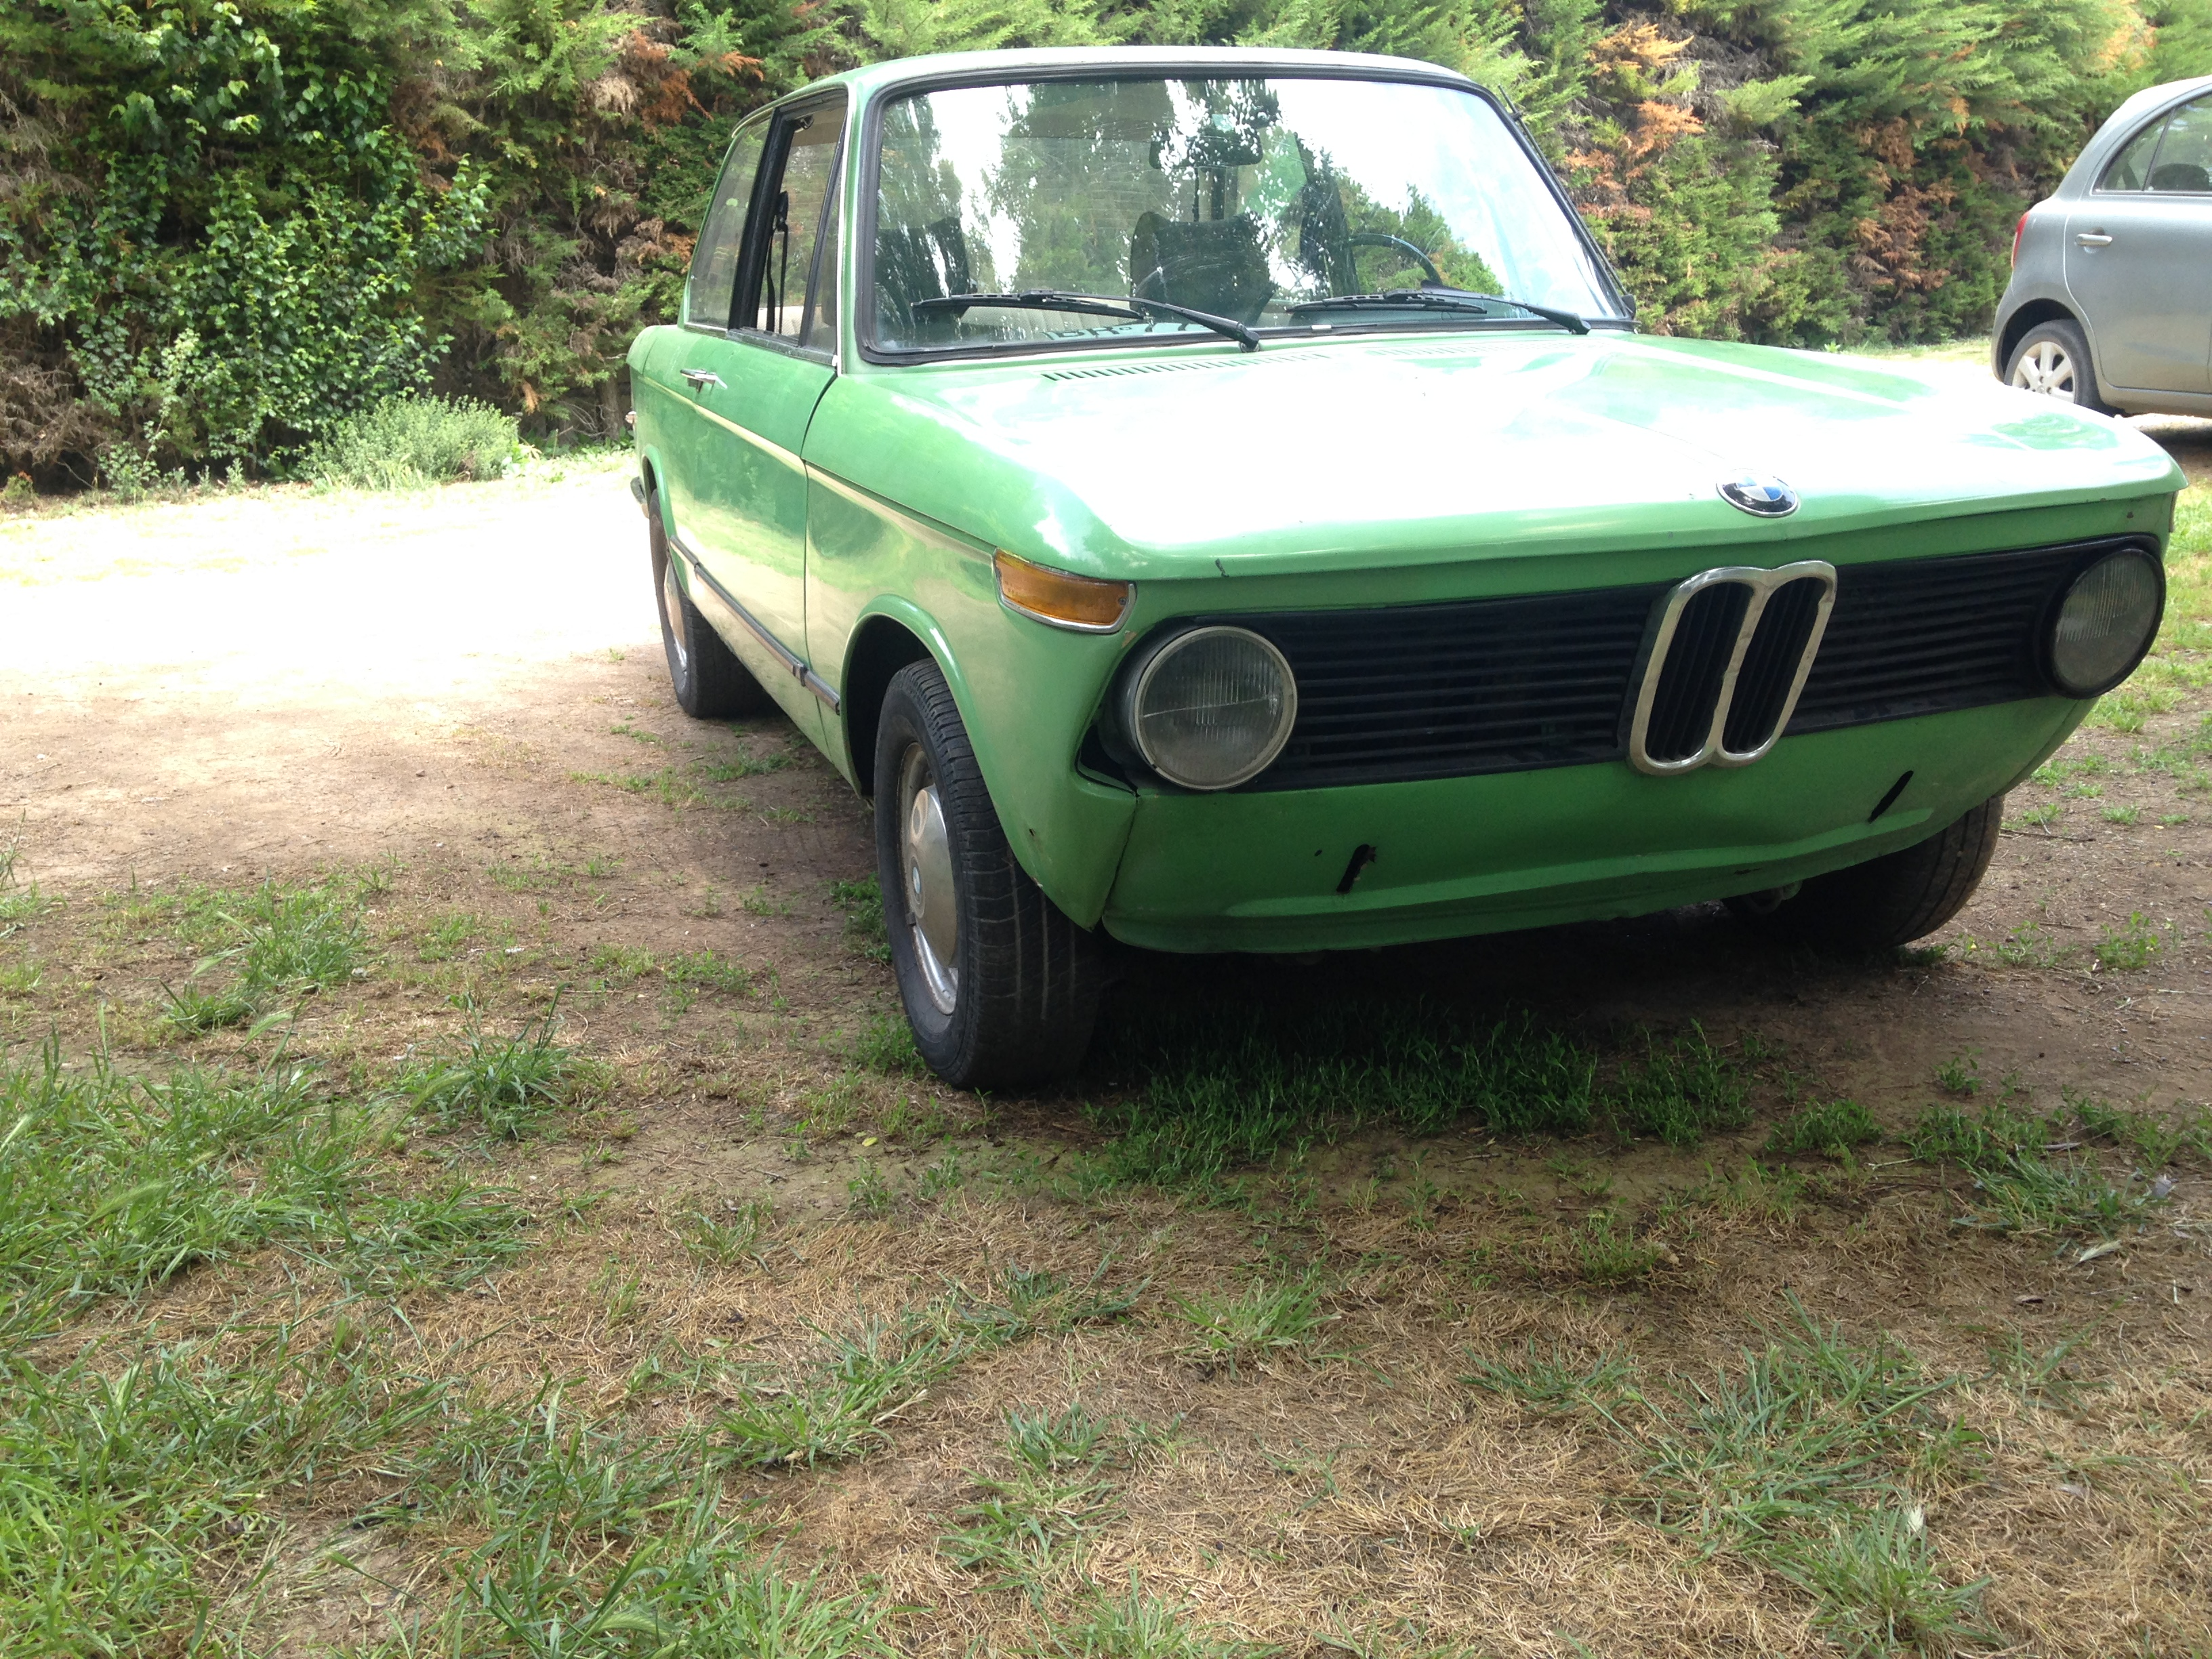 BMW 1502 color question - BMW 2002 General Discussion - BMW 2002 FAQ